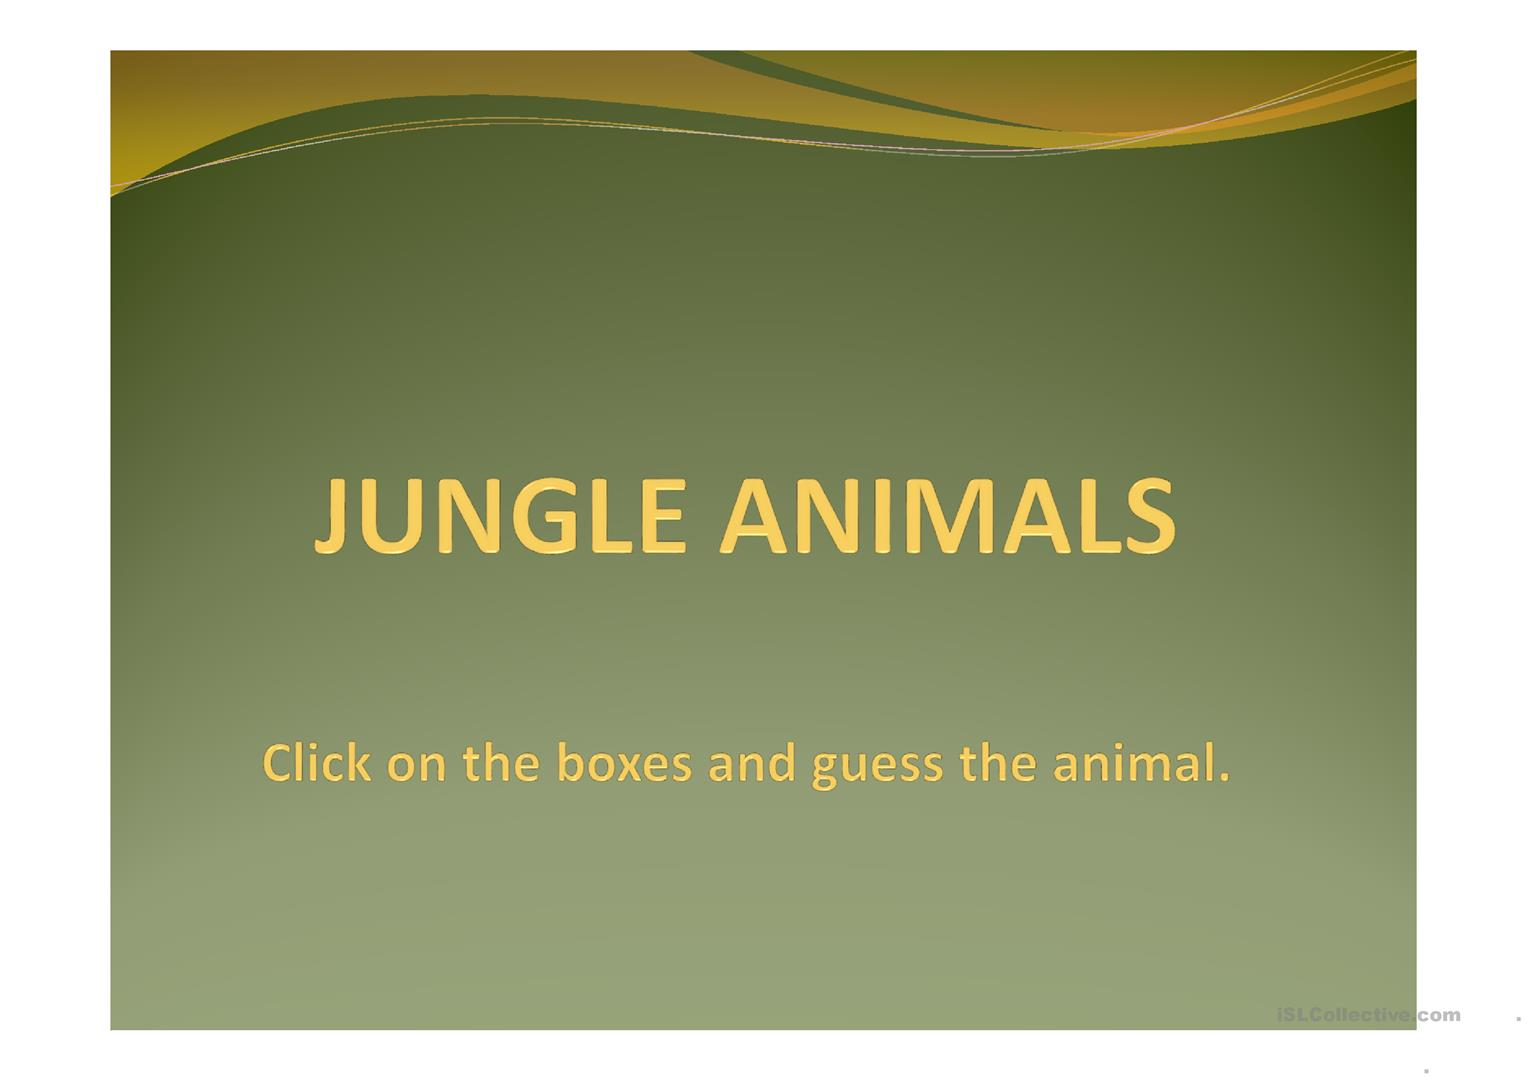 Jungle Animals Guessing Game